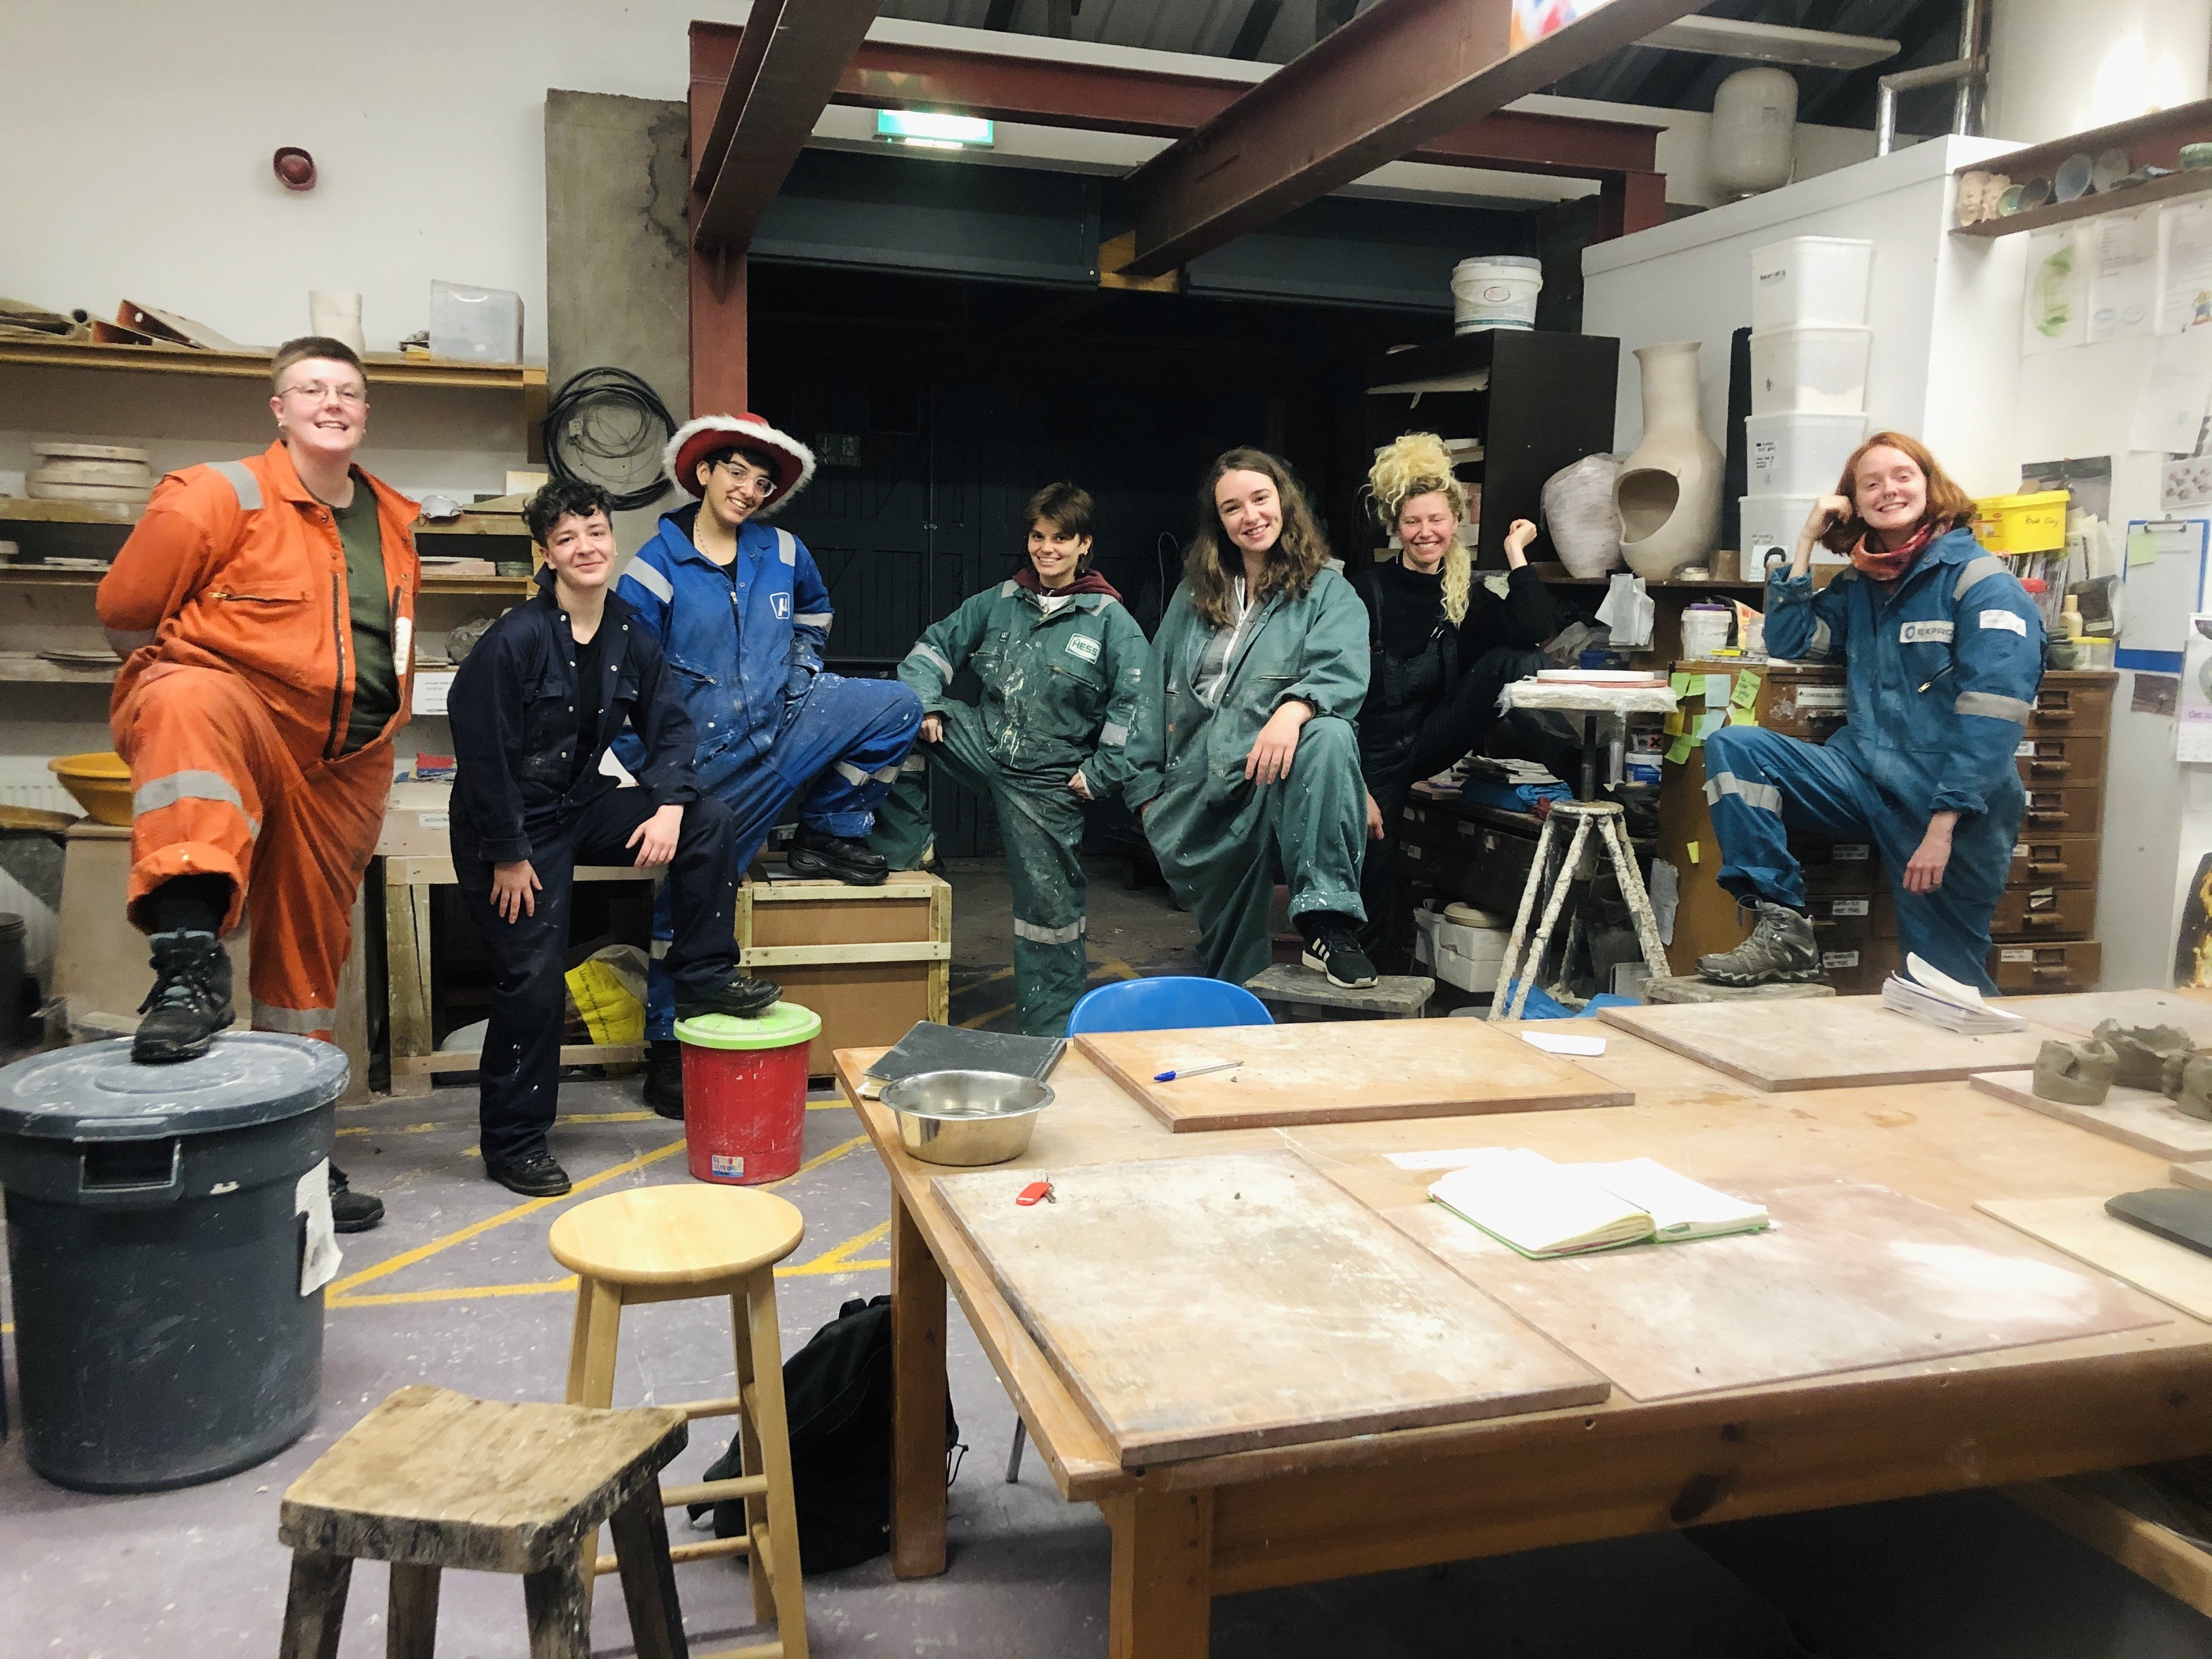 8 trans-masc artist pose in a clay/pottery studio in overalls, one person is wearing a red and white fluffy cowboy hat